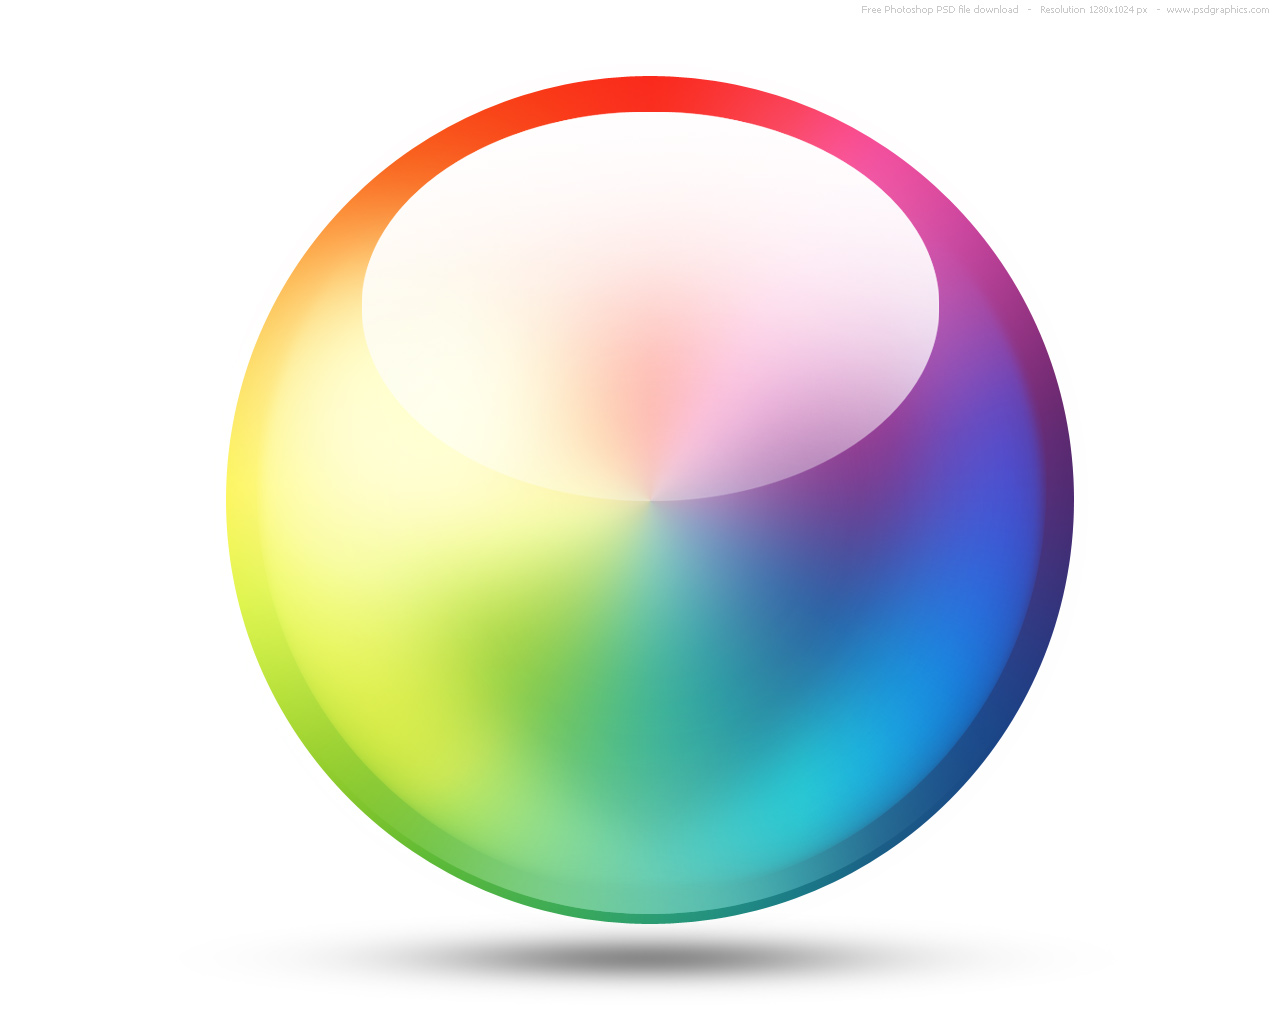 Psd color wheel icon psdgraphics wheel icon thecheapjerseys Gallery